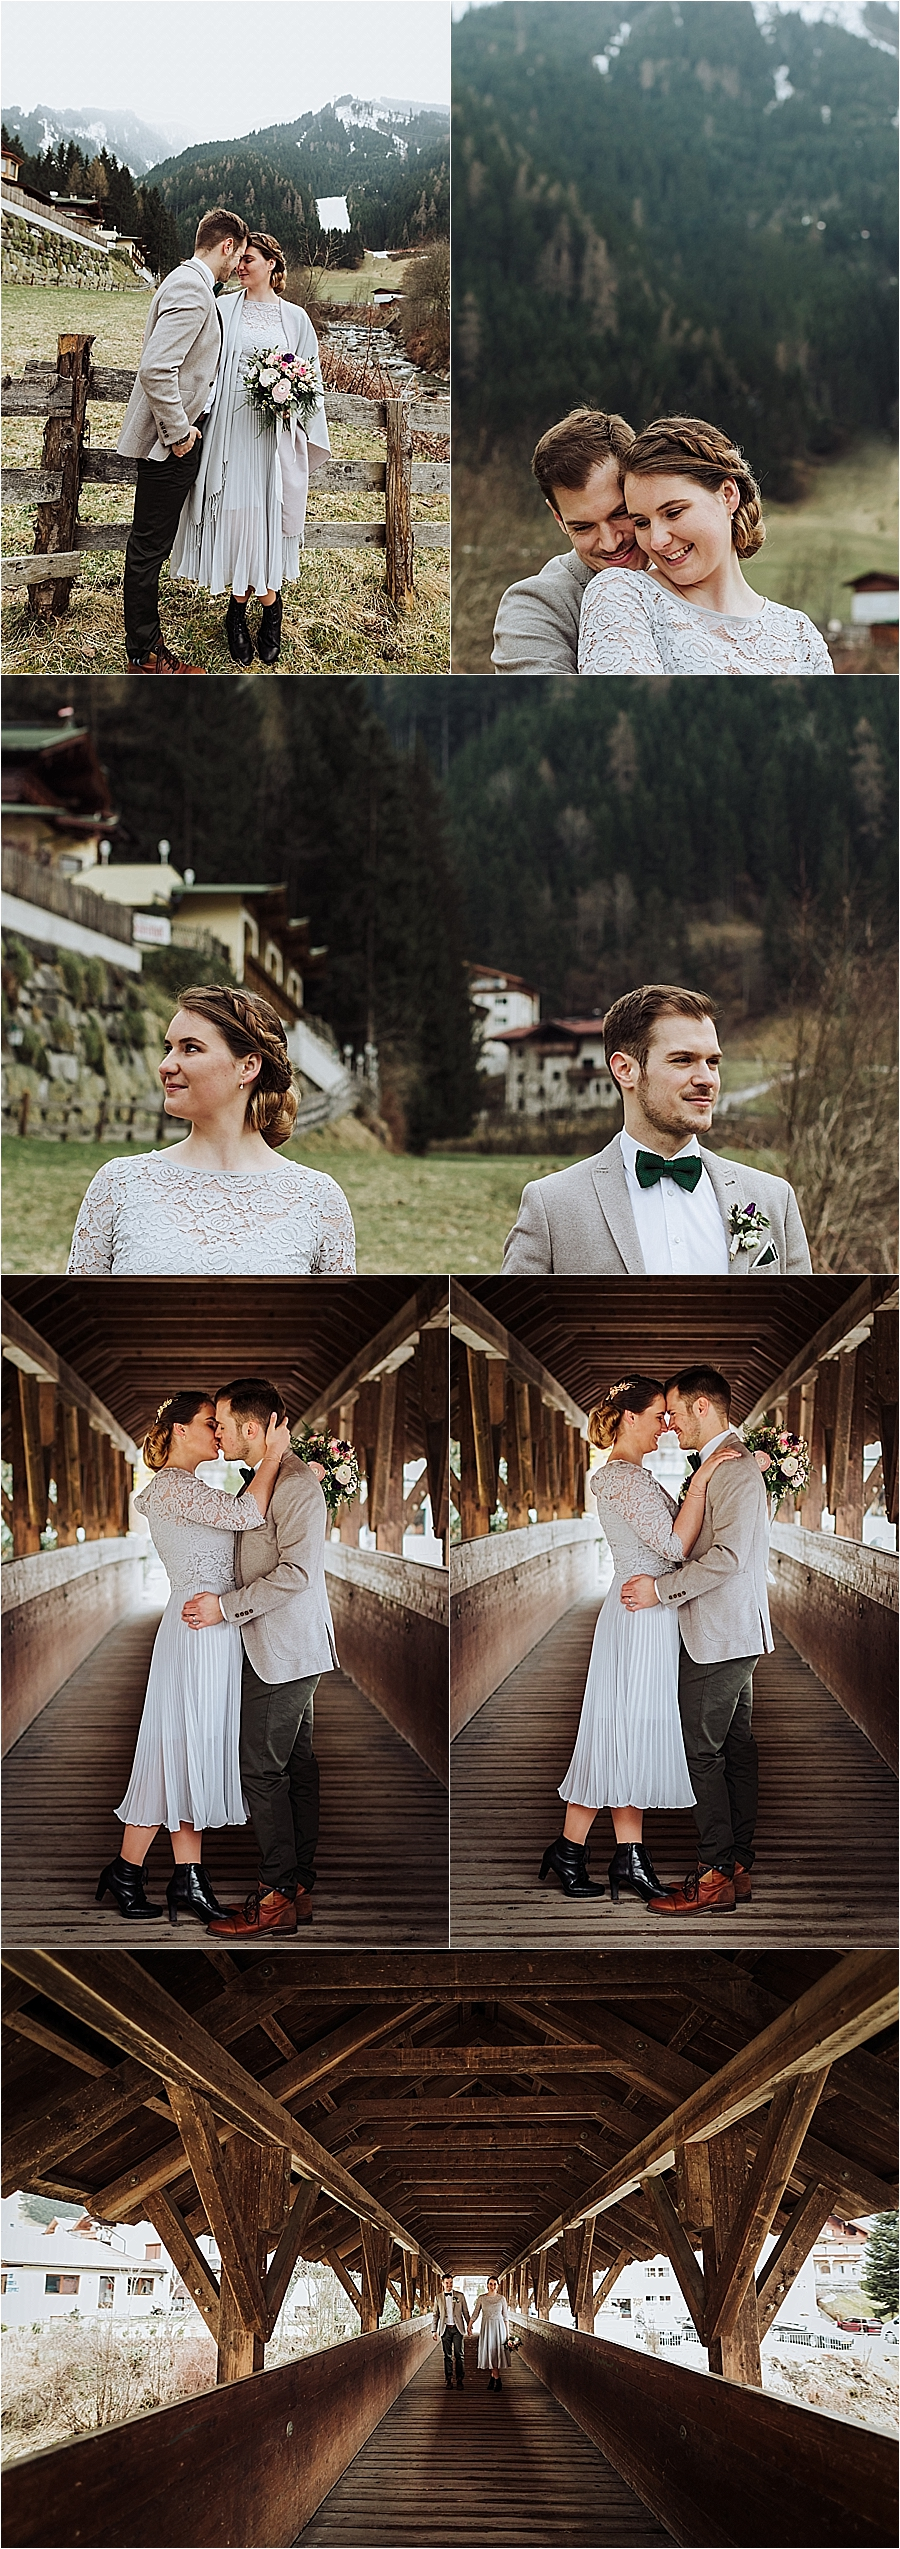 Springtime feels for this winter mountain elopement in Mayrhofen Austria by Wild Connections Photography